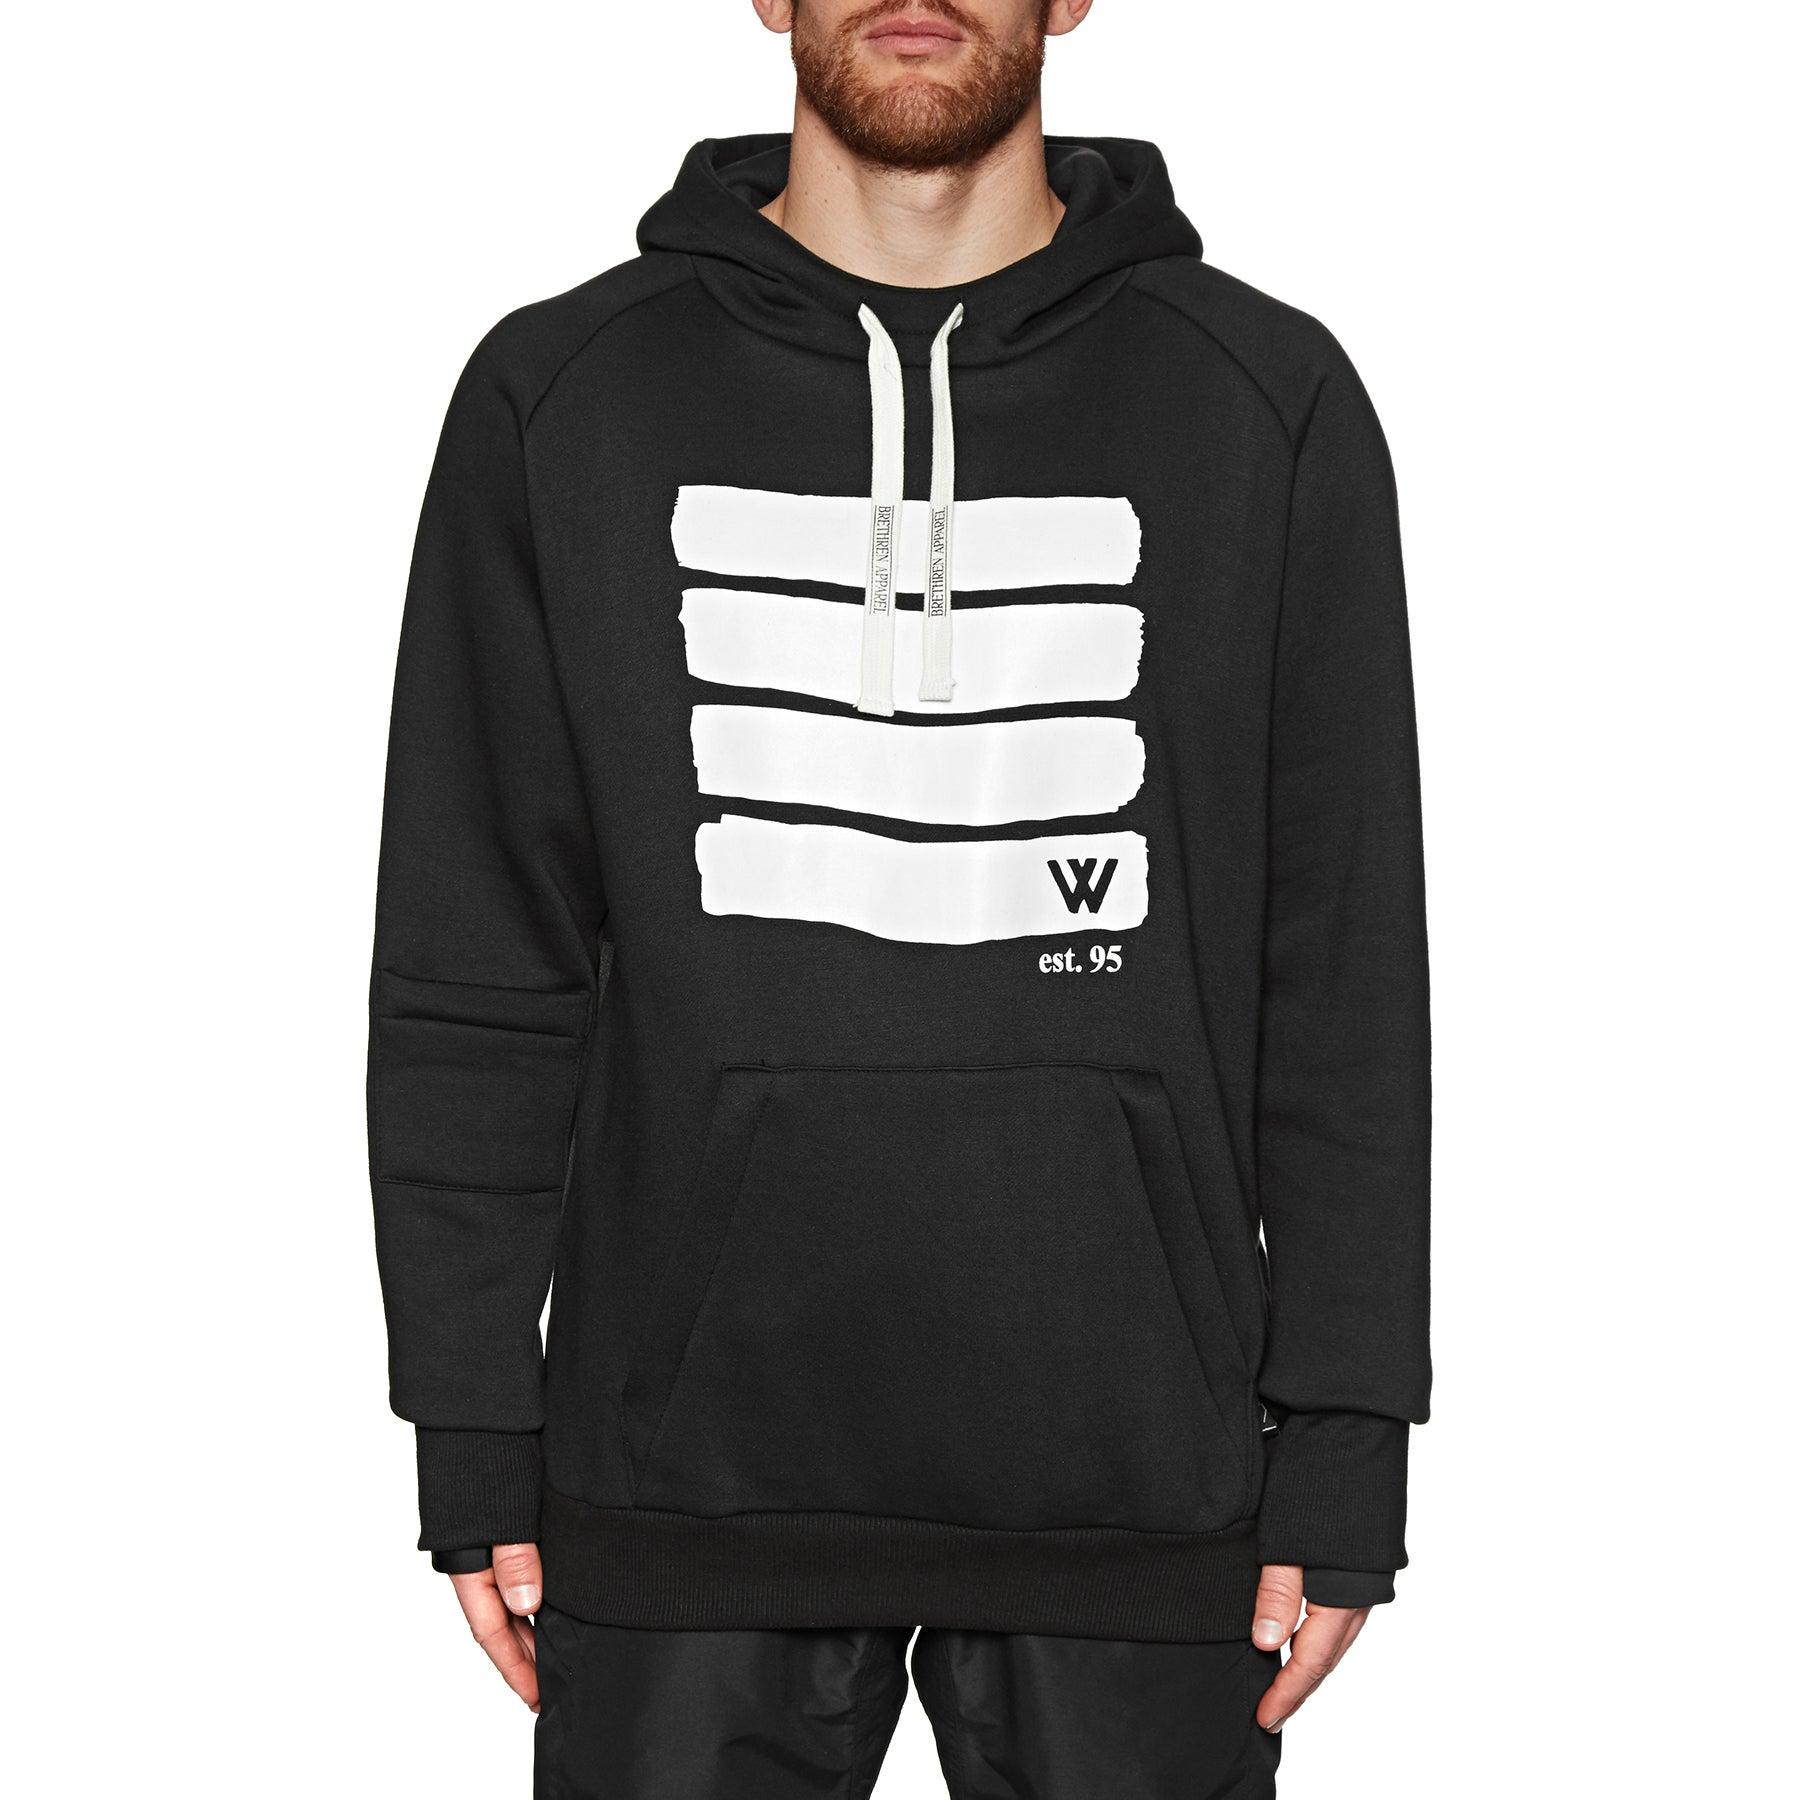 Whitelines Lines Riding Pullover Hoody - Black